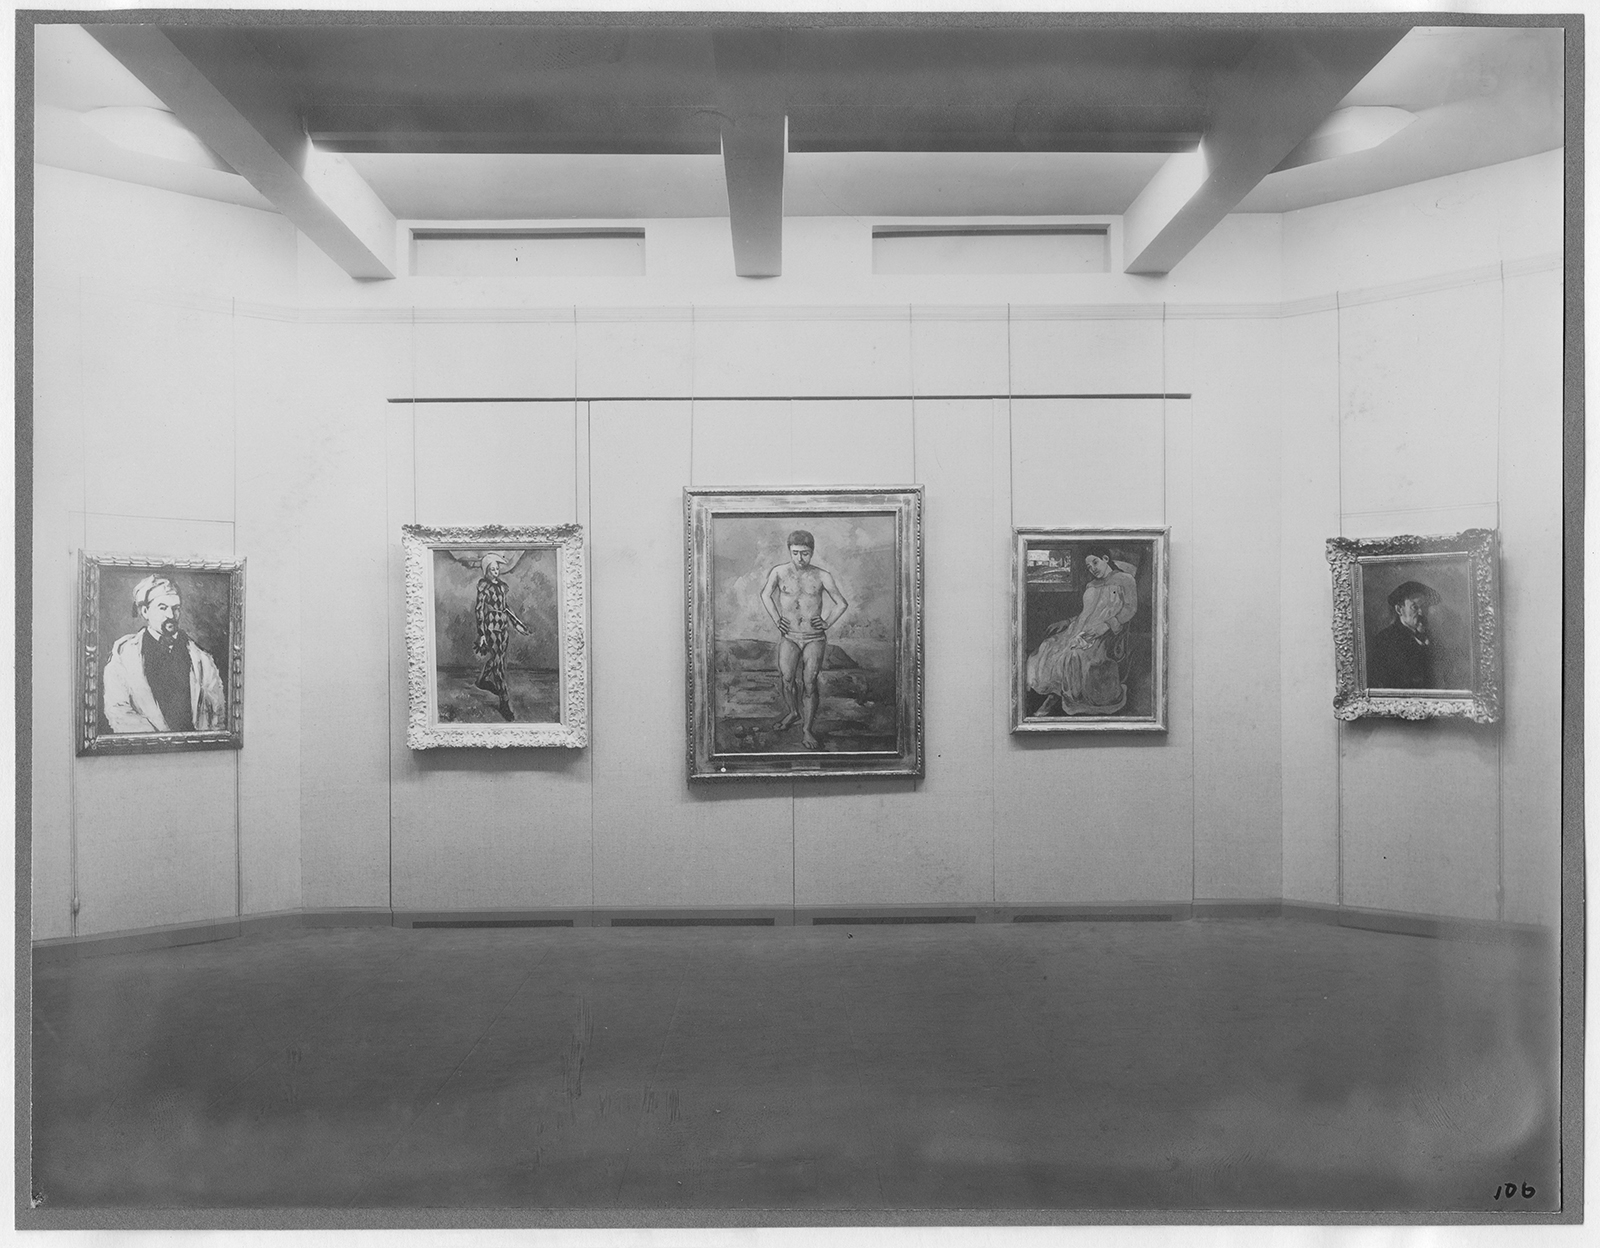 Mom'a First Show! Installation view of the exhibition Cézanne, Gauguin, Seurat, Van Gogh, on view November 7, 1929 through December 7, 1929 at The Museum of Modern Art, New York. The Museum of Modern Art Archives, New York. Photographer: Peter Juley